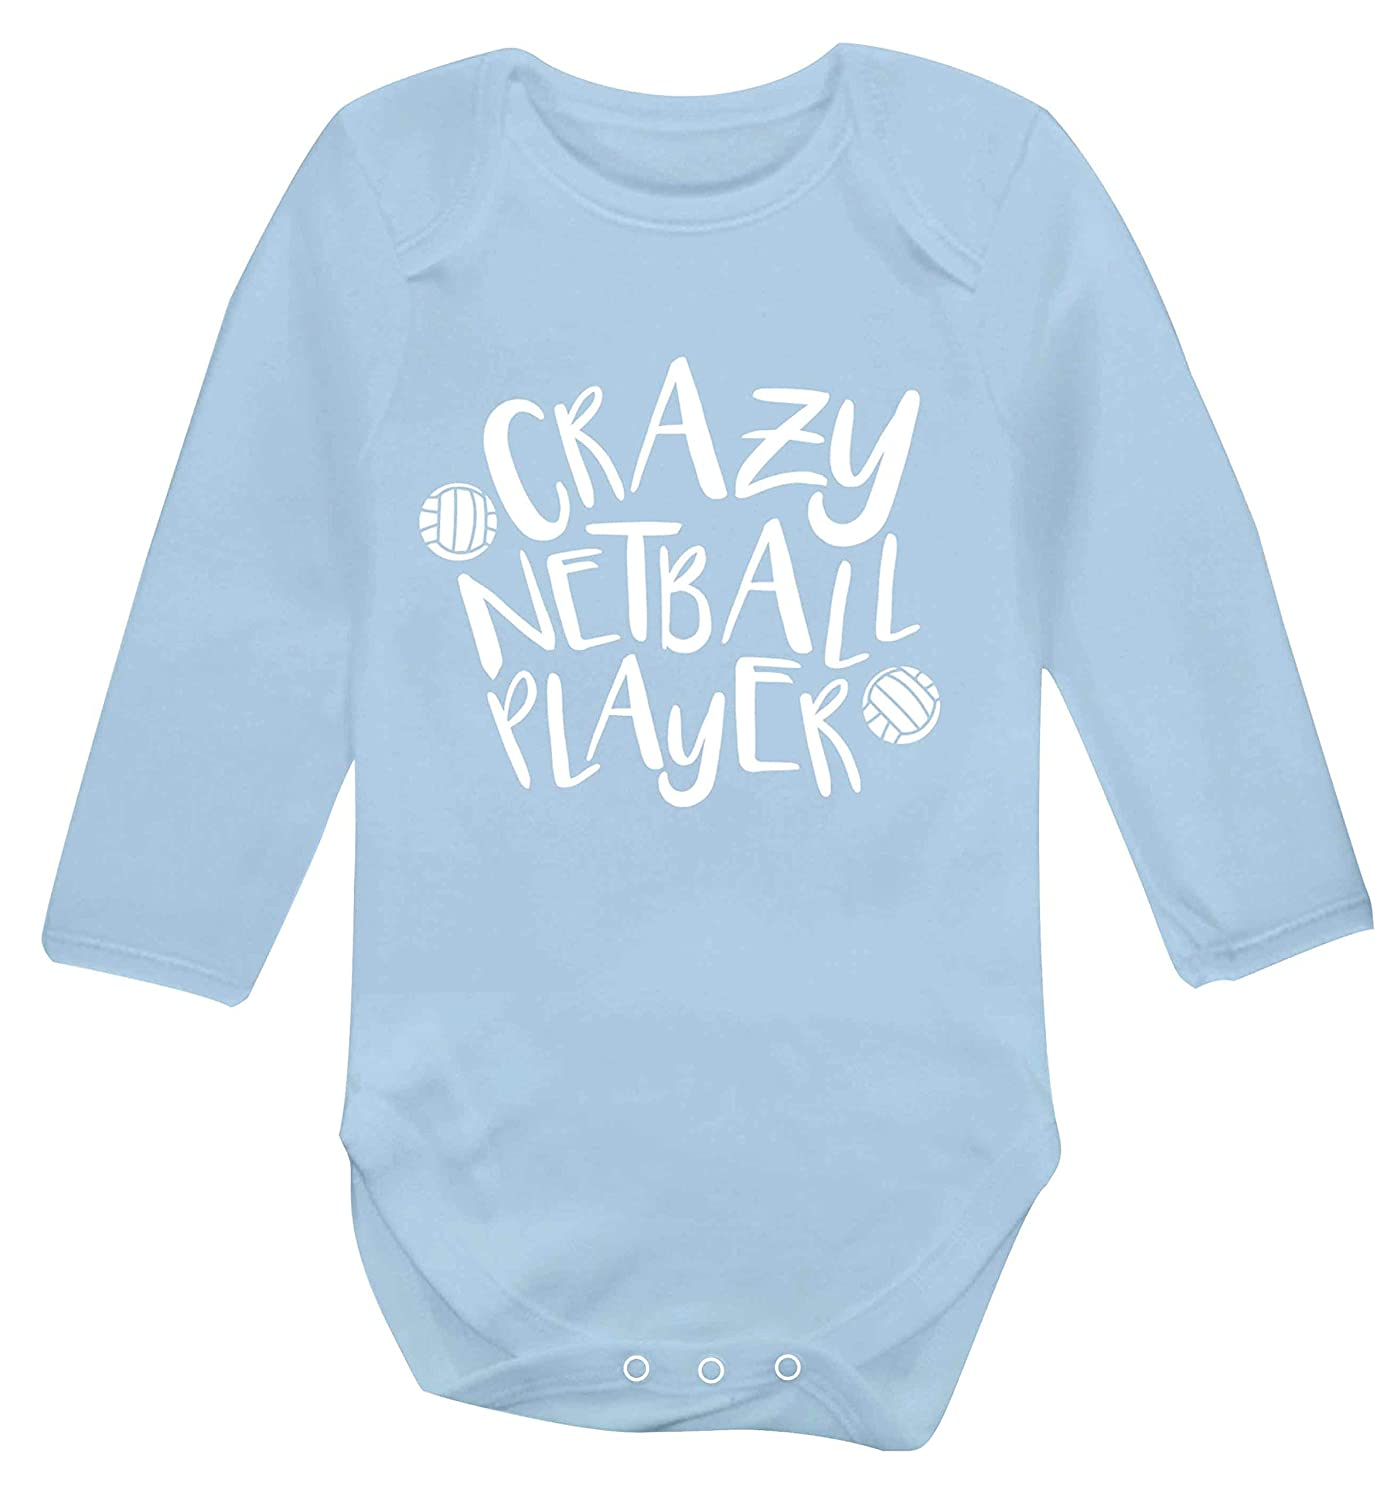 Flox Creative Long Sleeved Baby Vest Crazy Netball Player